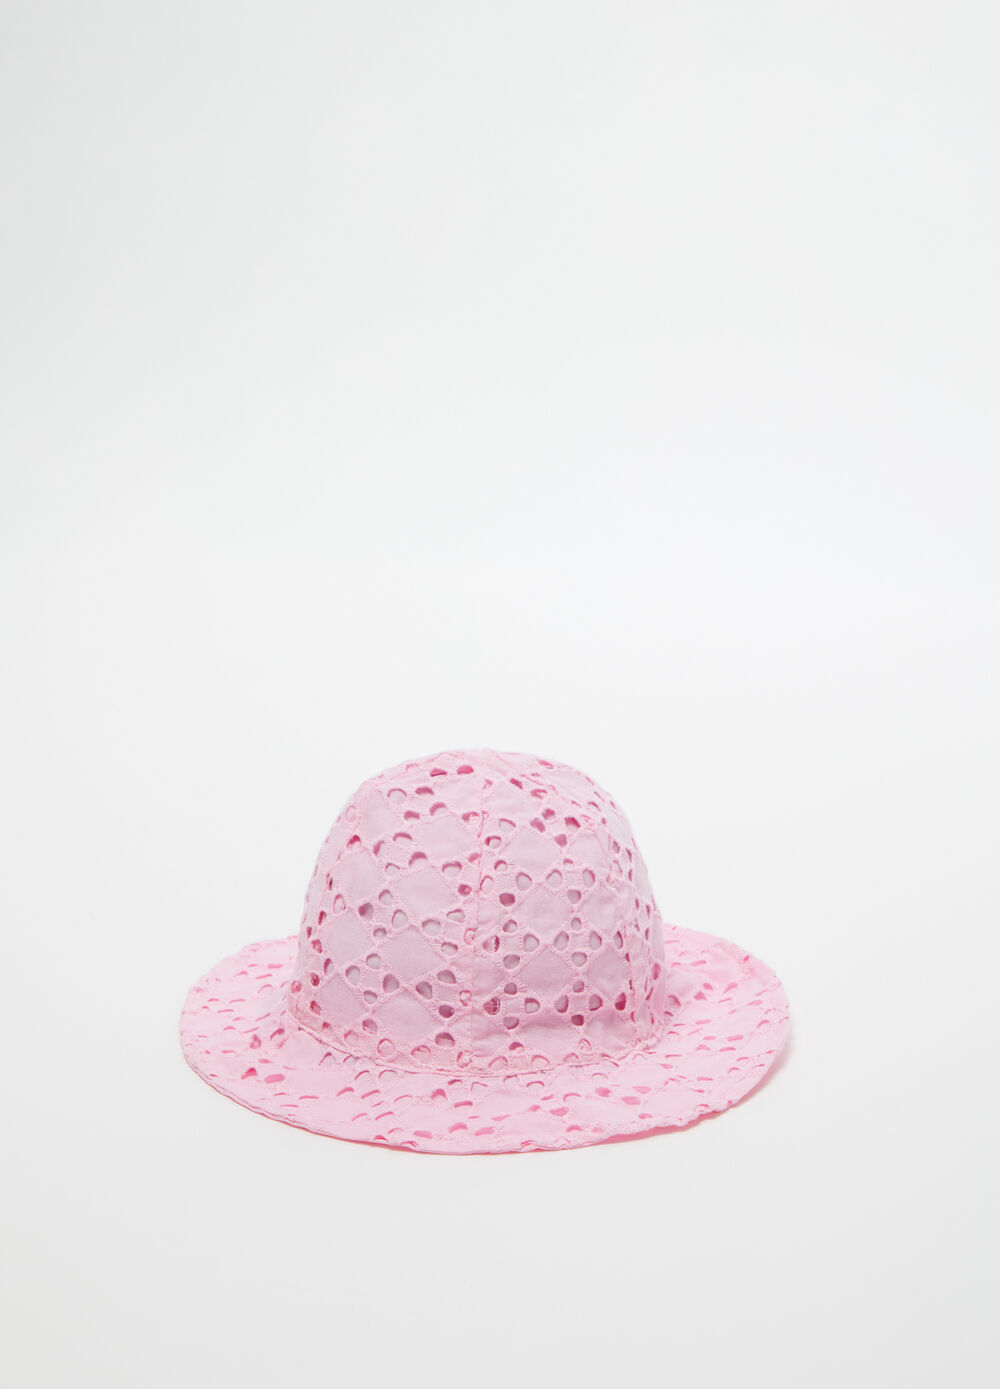 Fishing hat in broderie anglaise